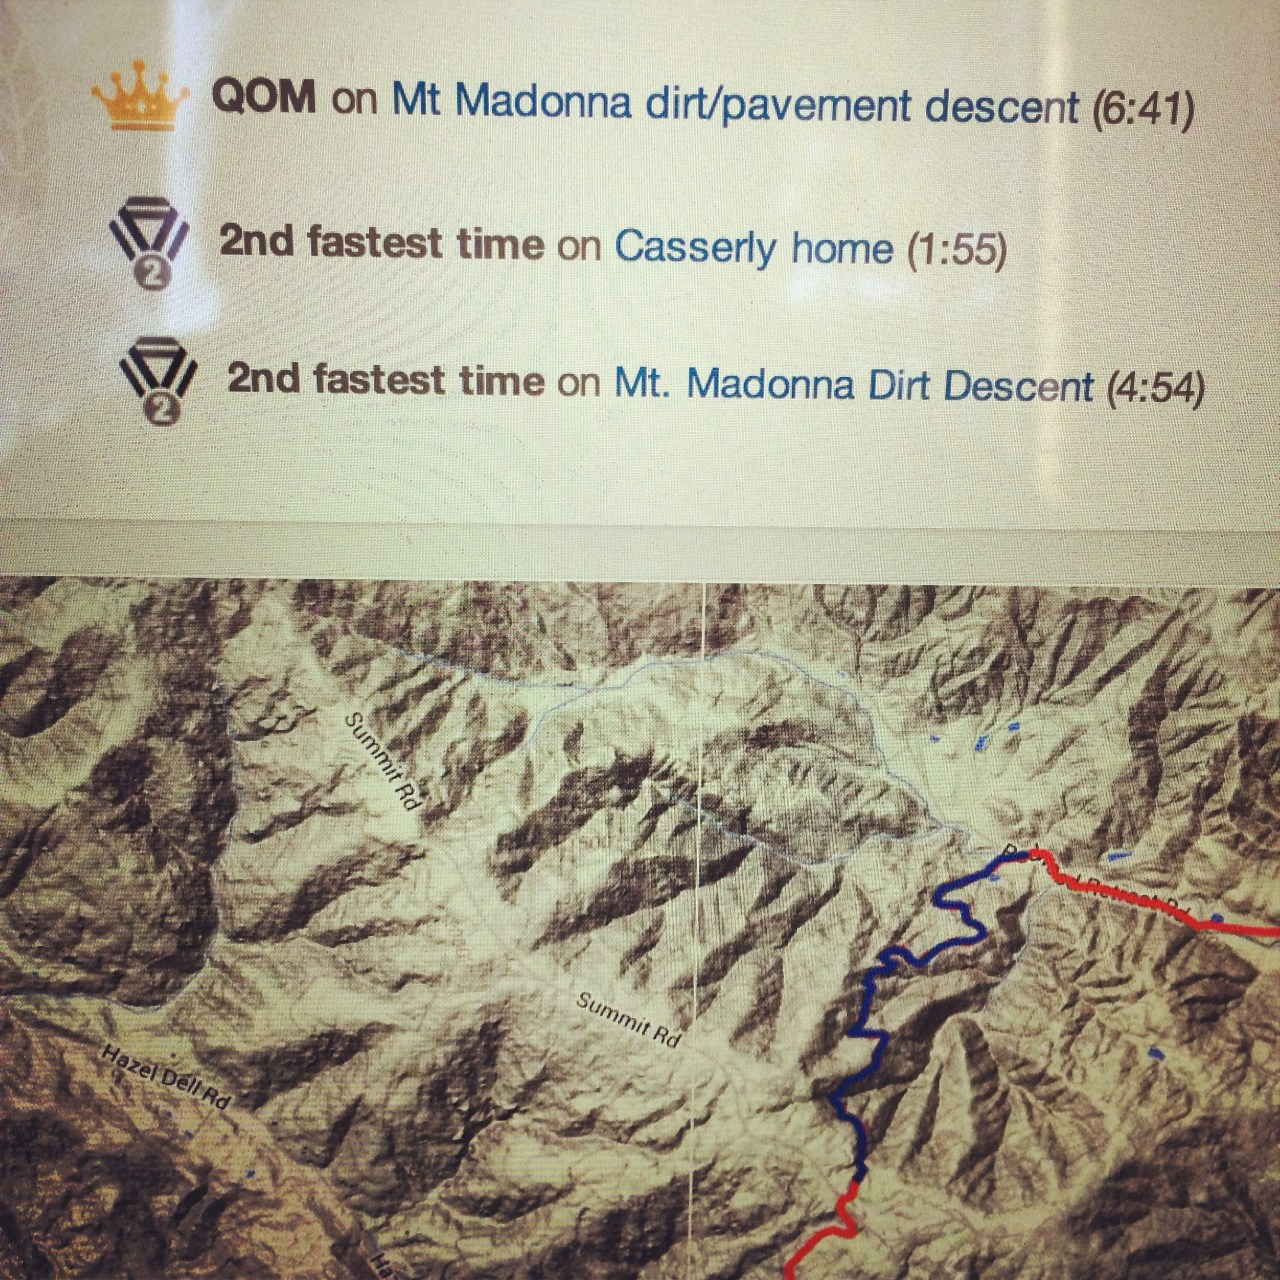 I now have QOM on both sides of Madonna descents. Yes.